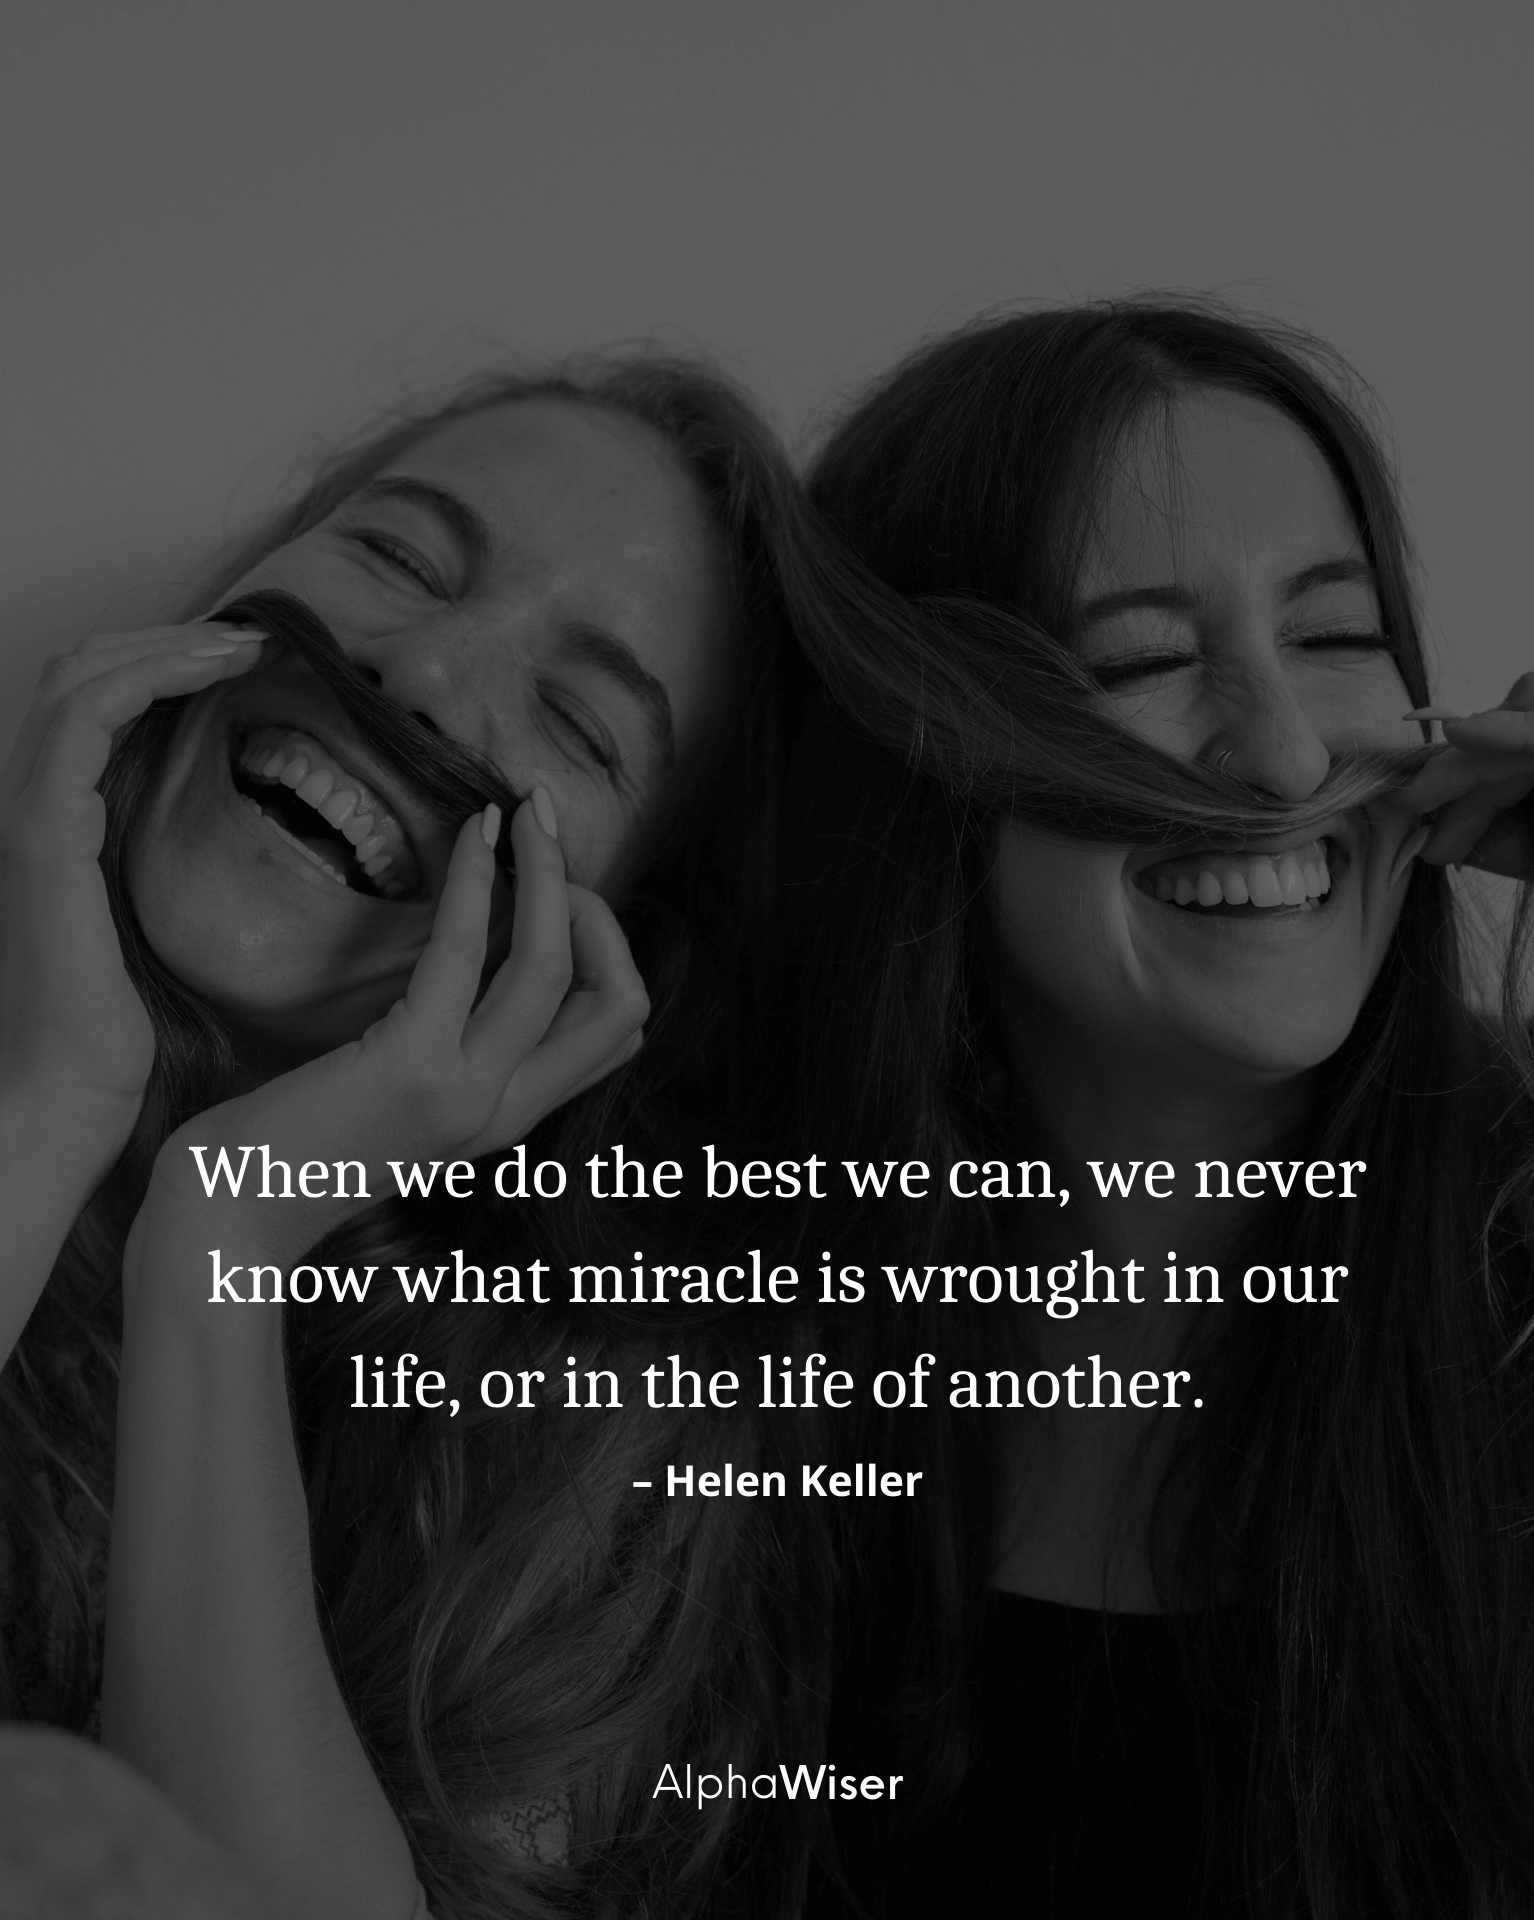 When we do the best we can, we never know what miracle is wrought in our life, or in the life of another.